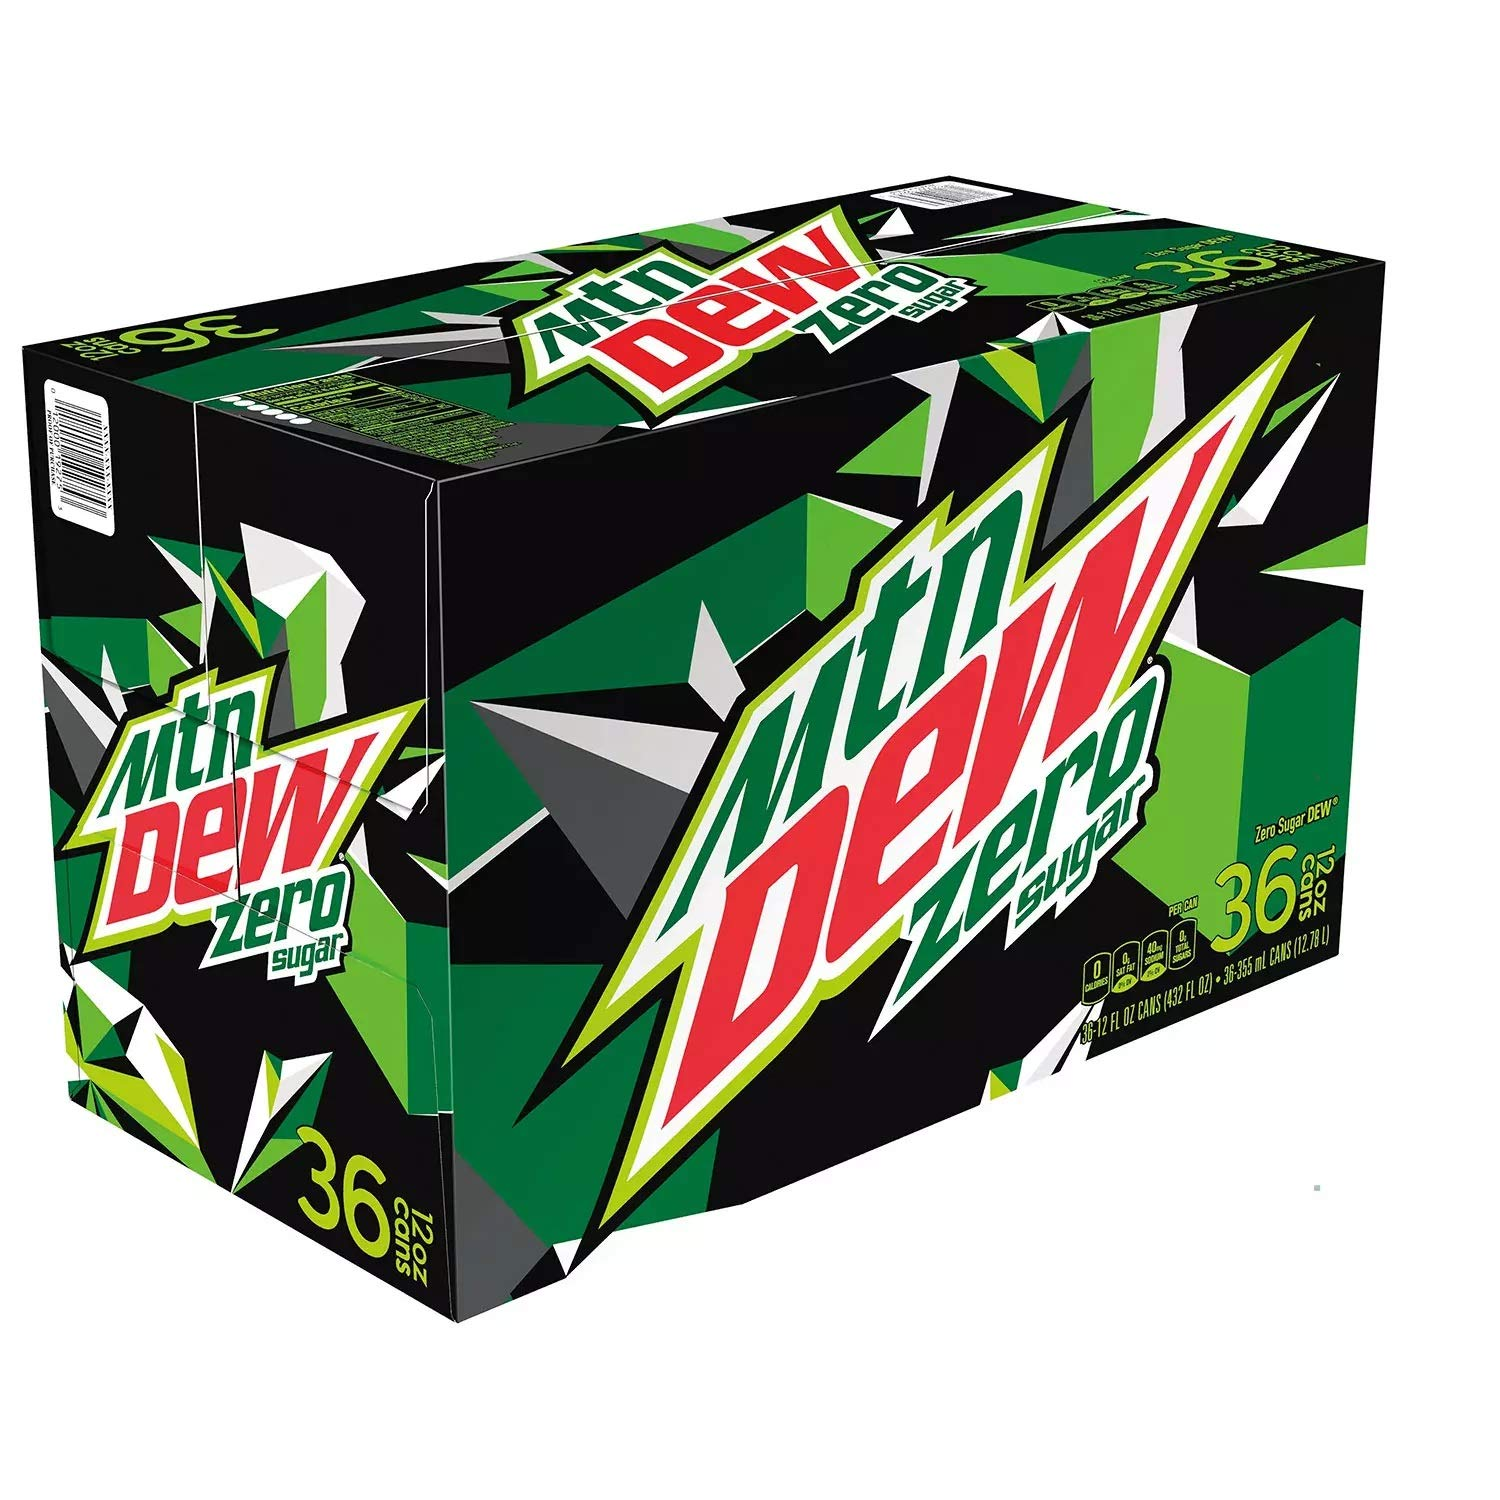 Mountain Dew Zero Sugar, 12 Ounce Cans (Pack of 36)